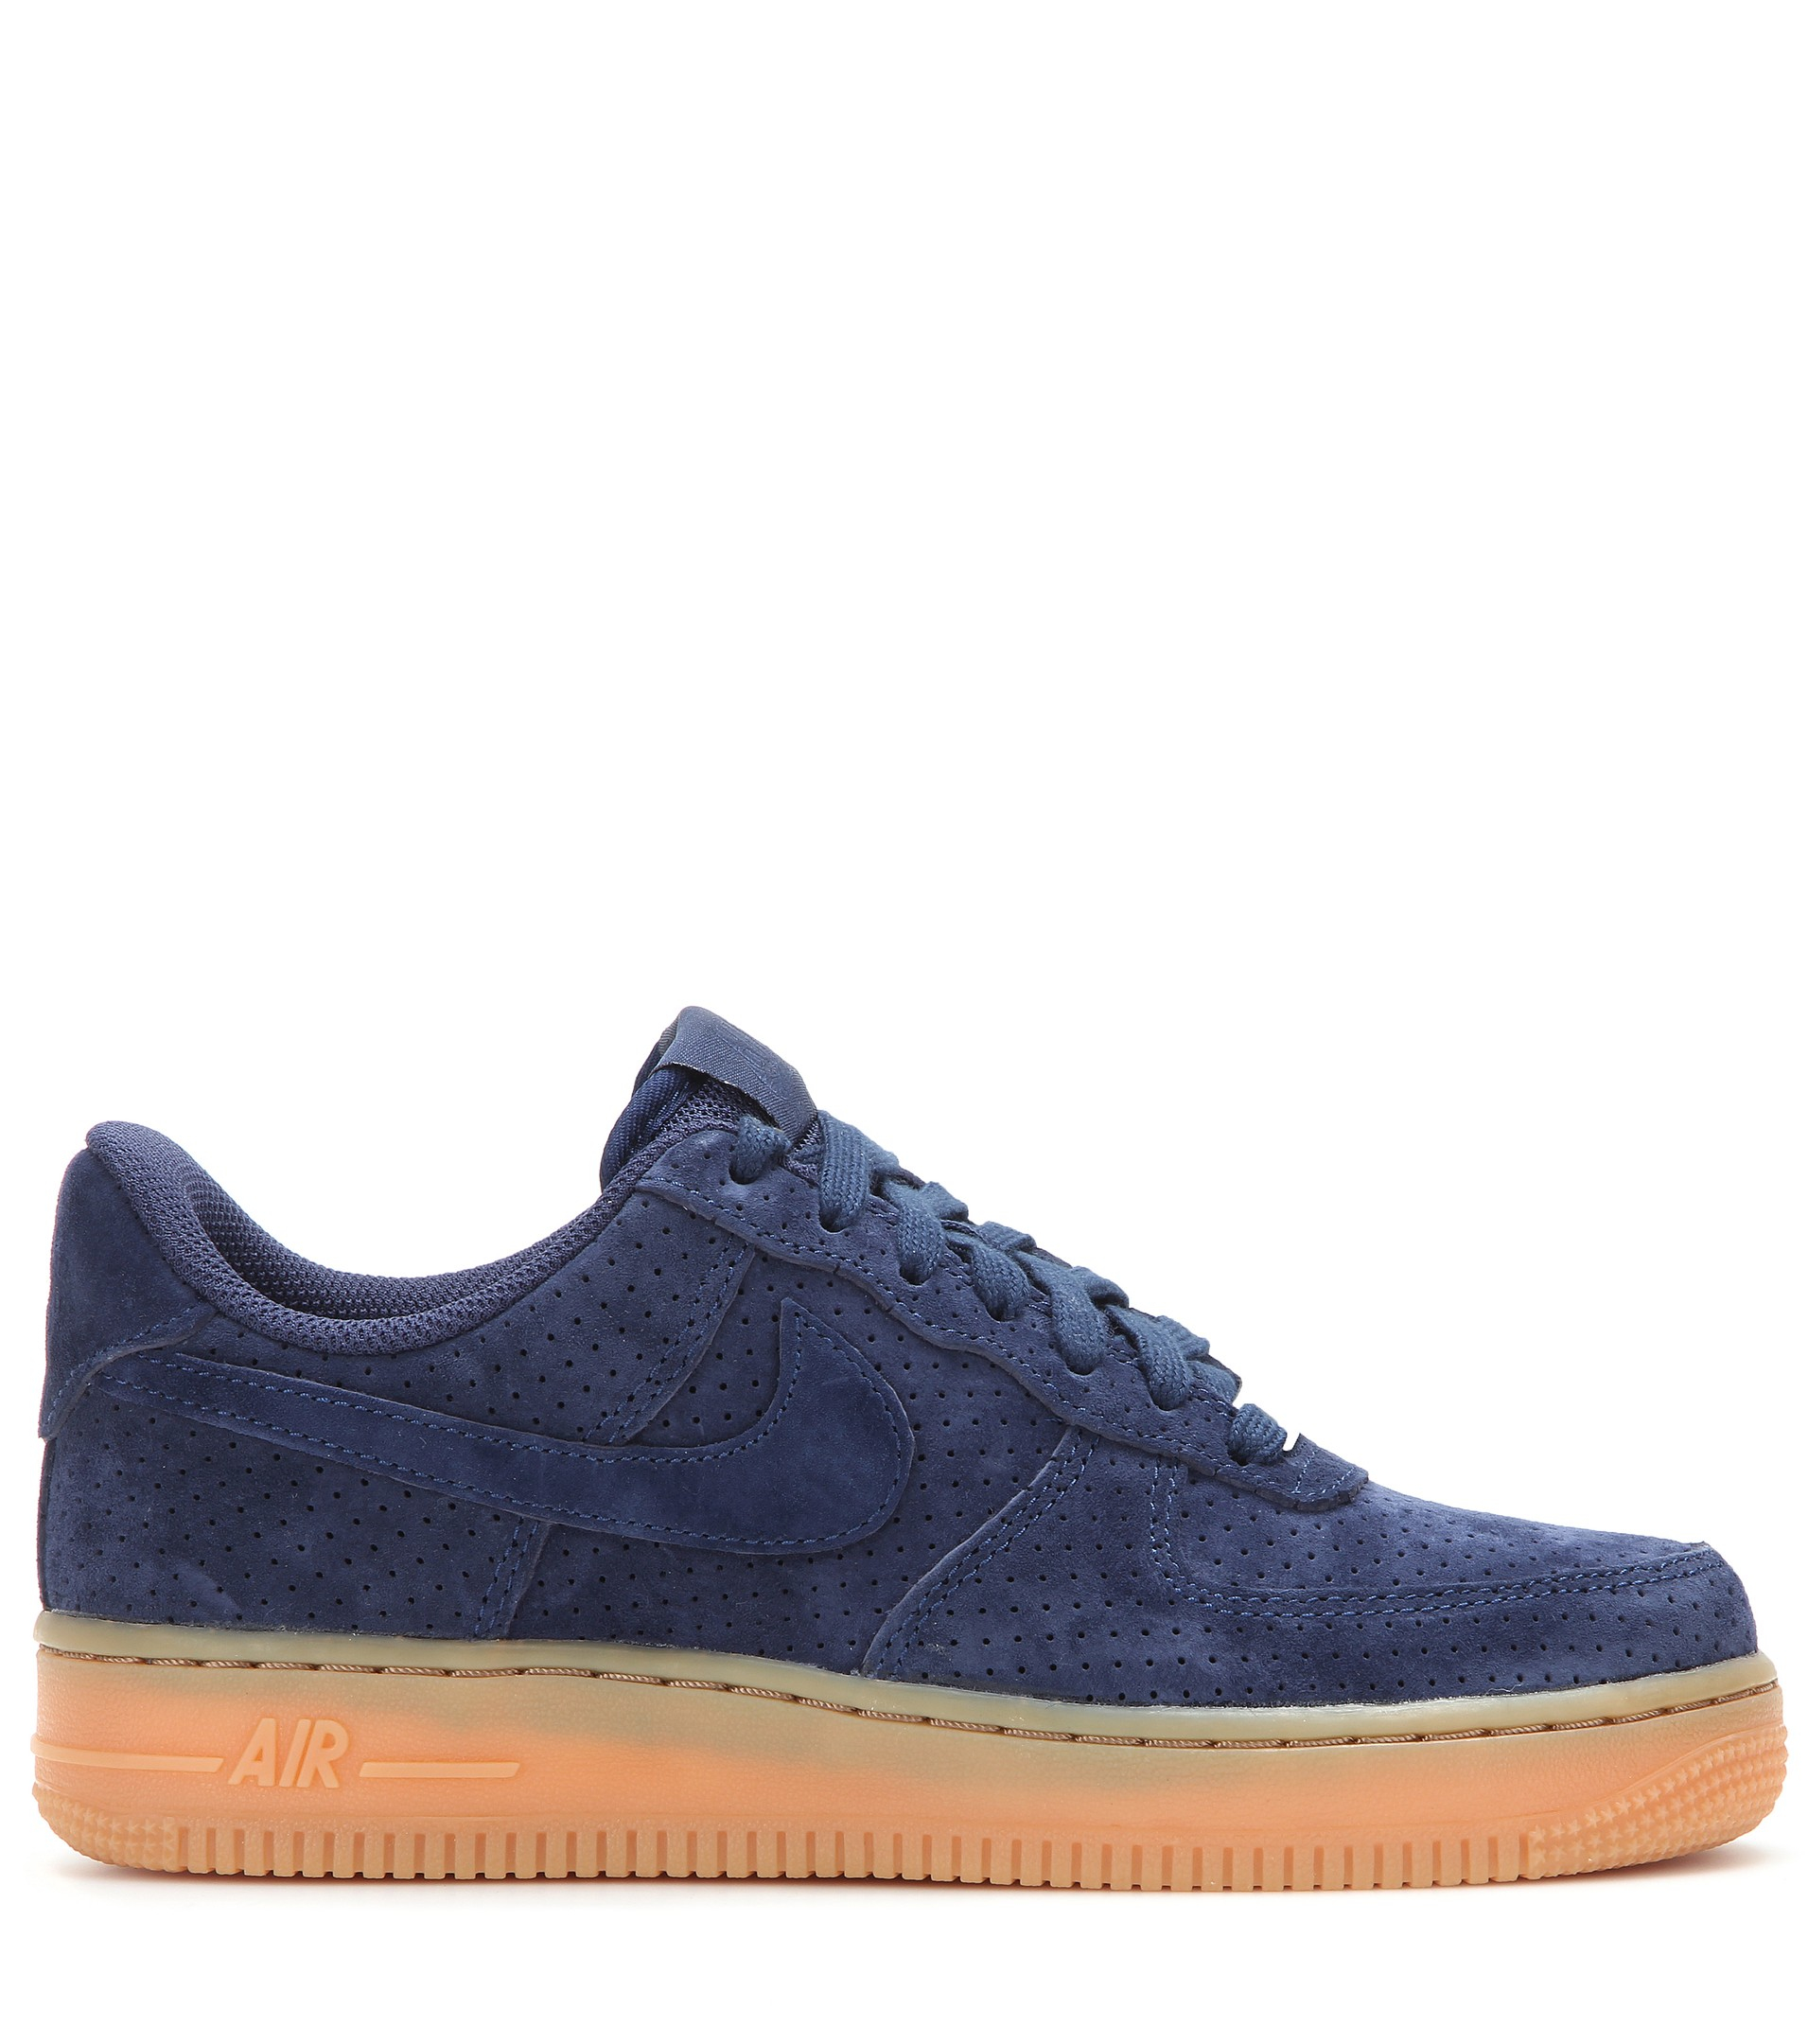 lyst nike air force 1 suede sneakers in blue. Black Bedroom Furniture Sets. Home Design Ideas